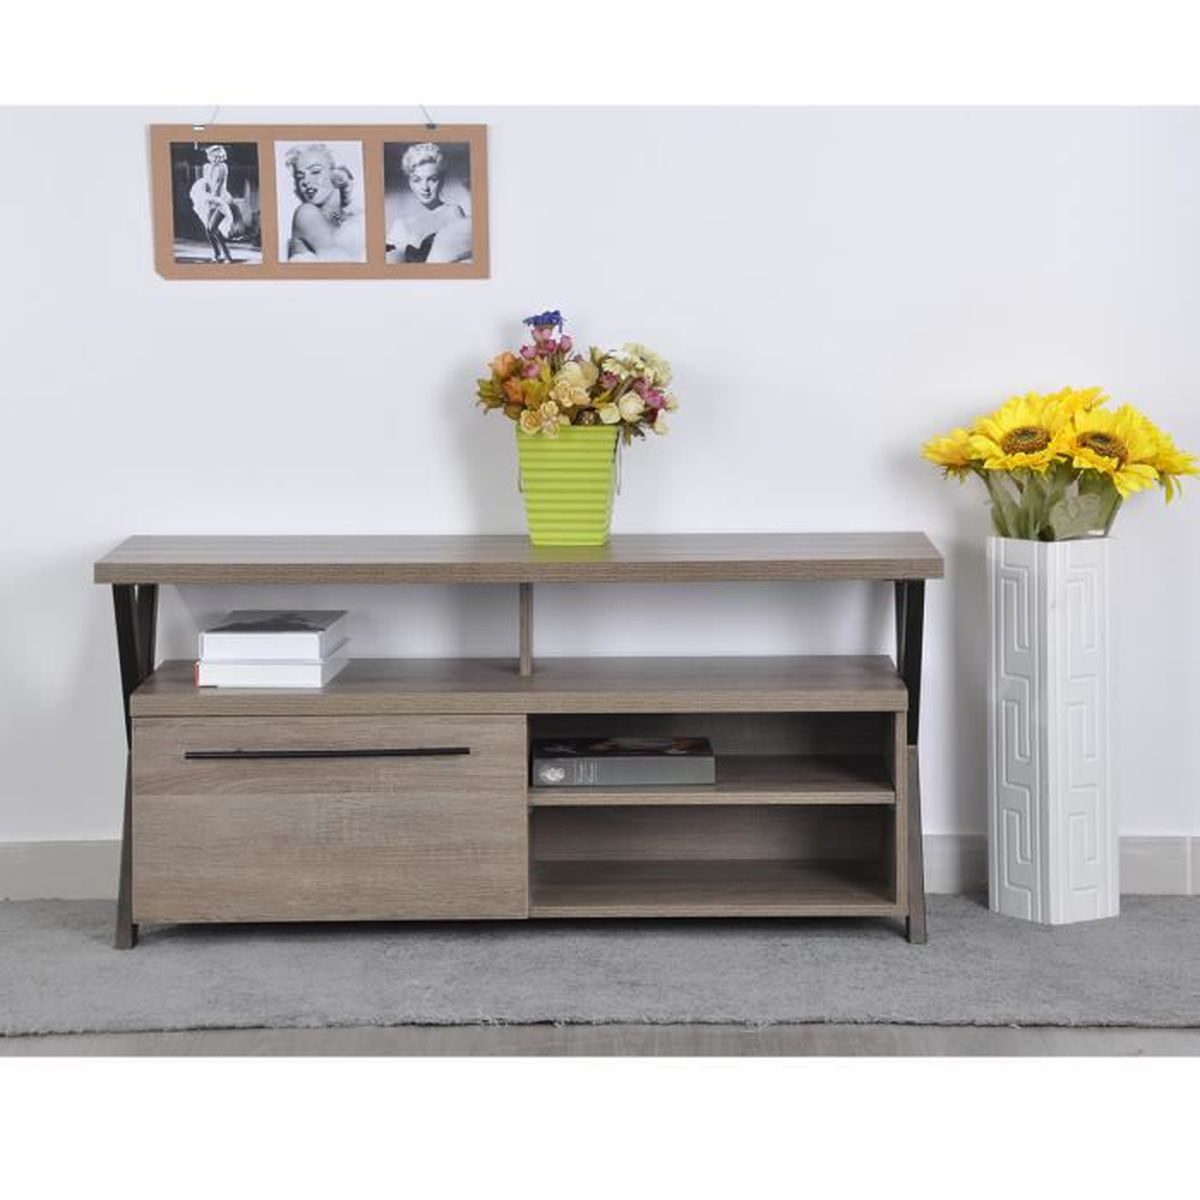 console meuble tv r tro design pour 50 meuble de t l vision avec tiroirs en bois gris achat. Black Bedroom Furniture Sets. Home Design Ideas